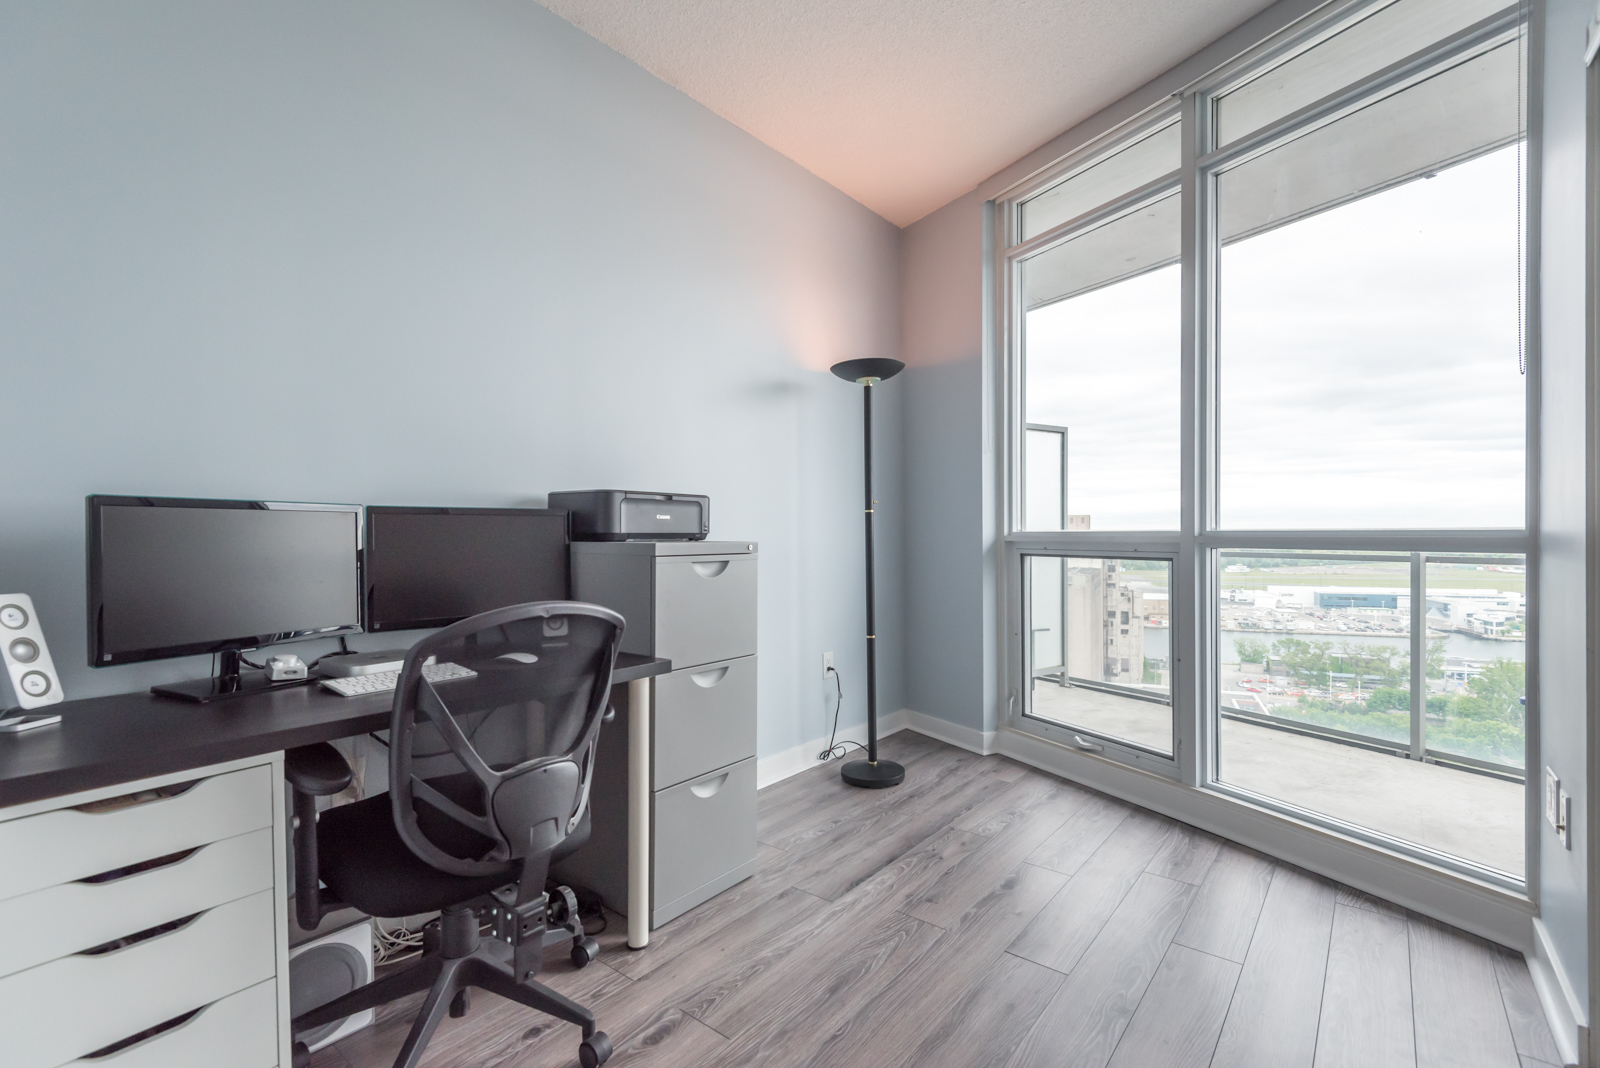 Image of second bedroom and another view of balcony. It also shows a desk and chair and laminate floors.